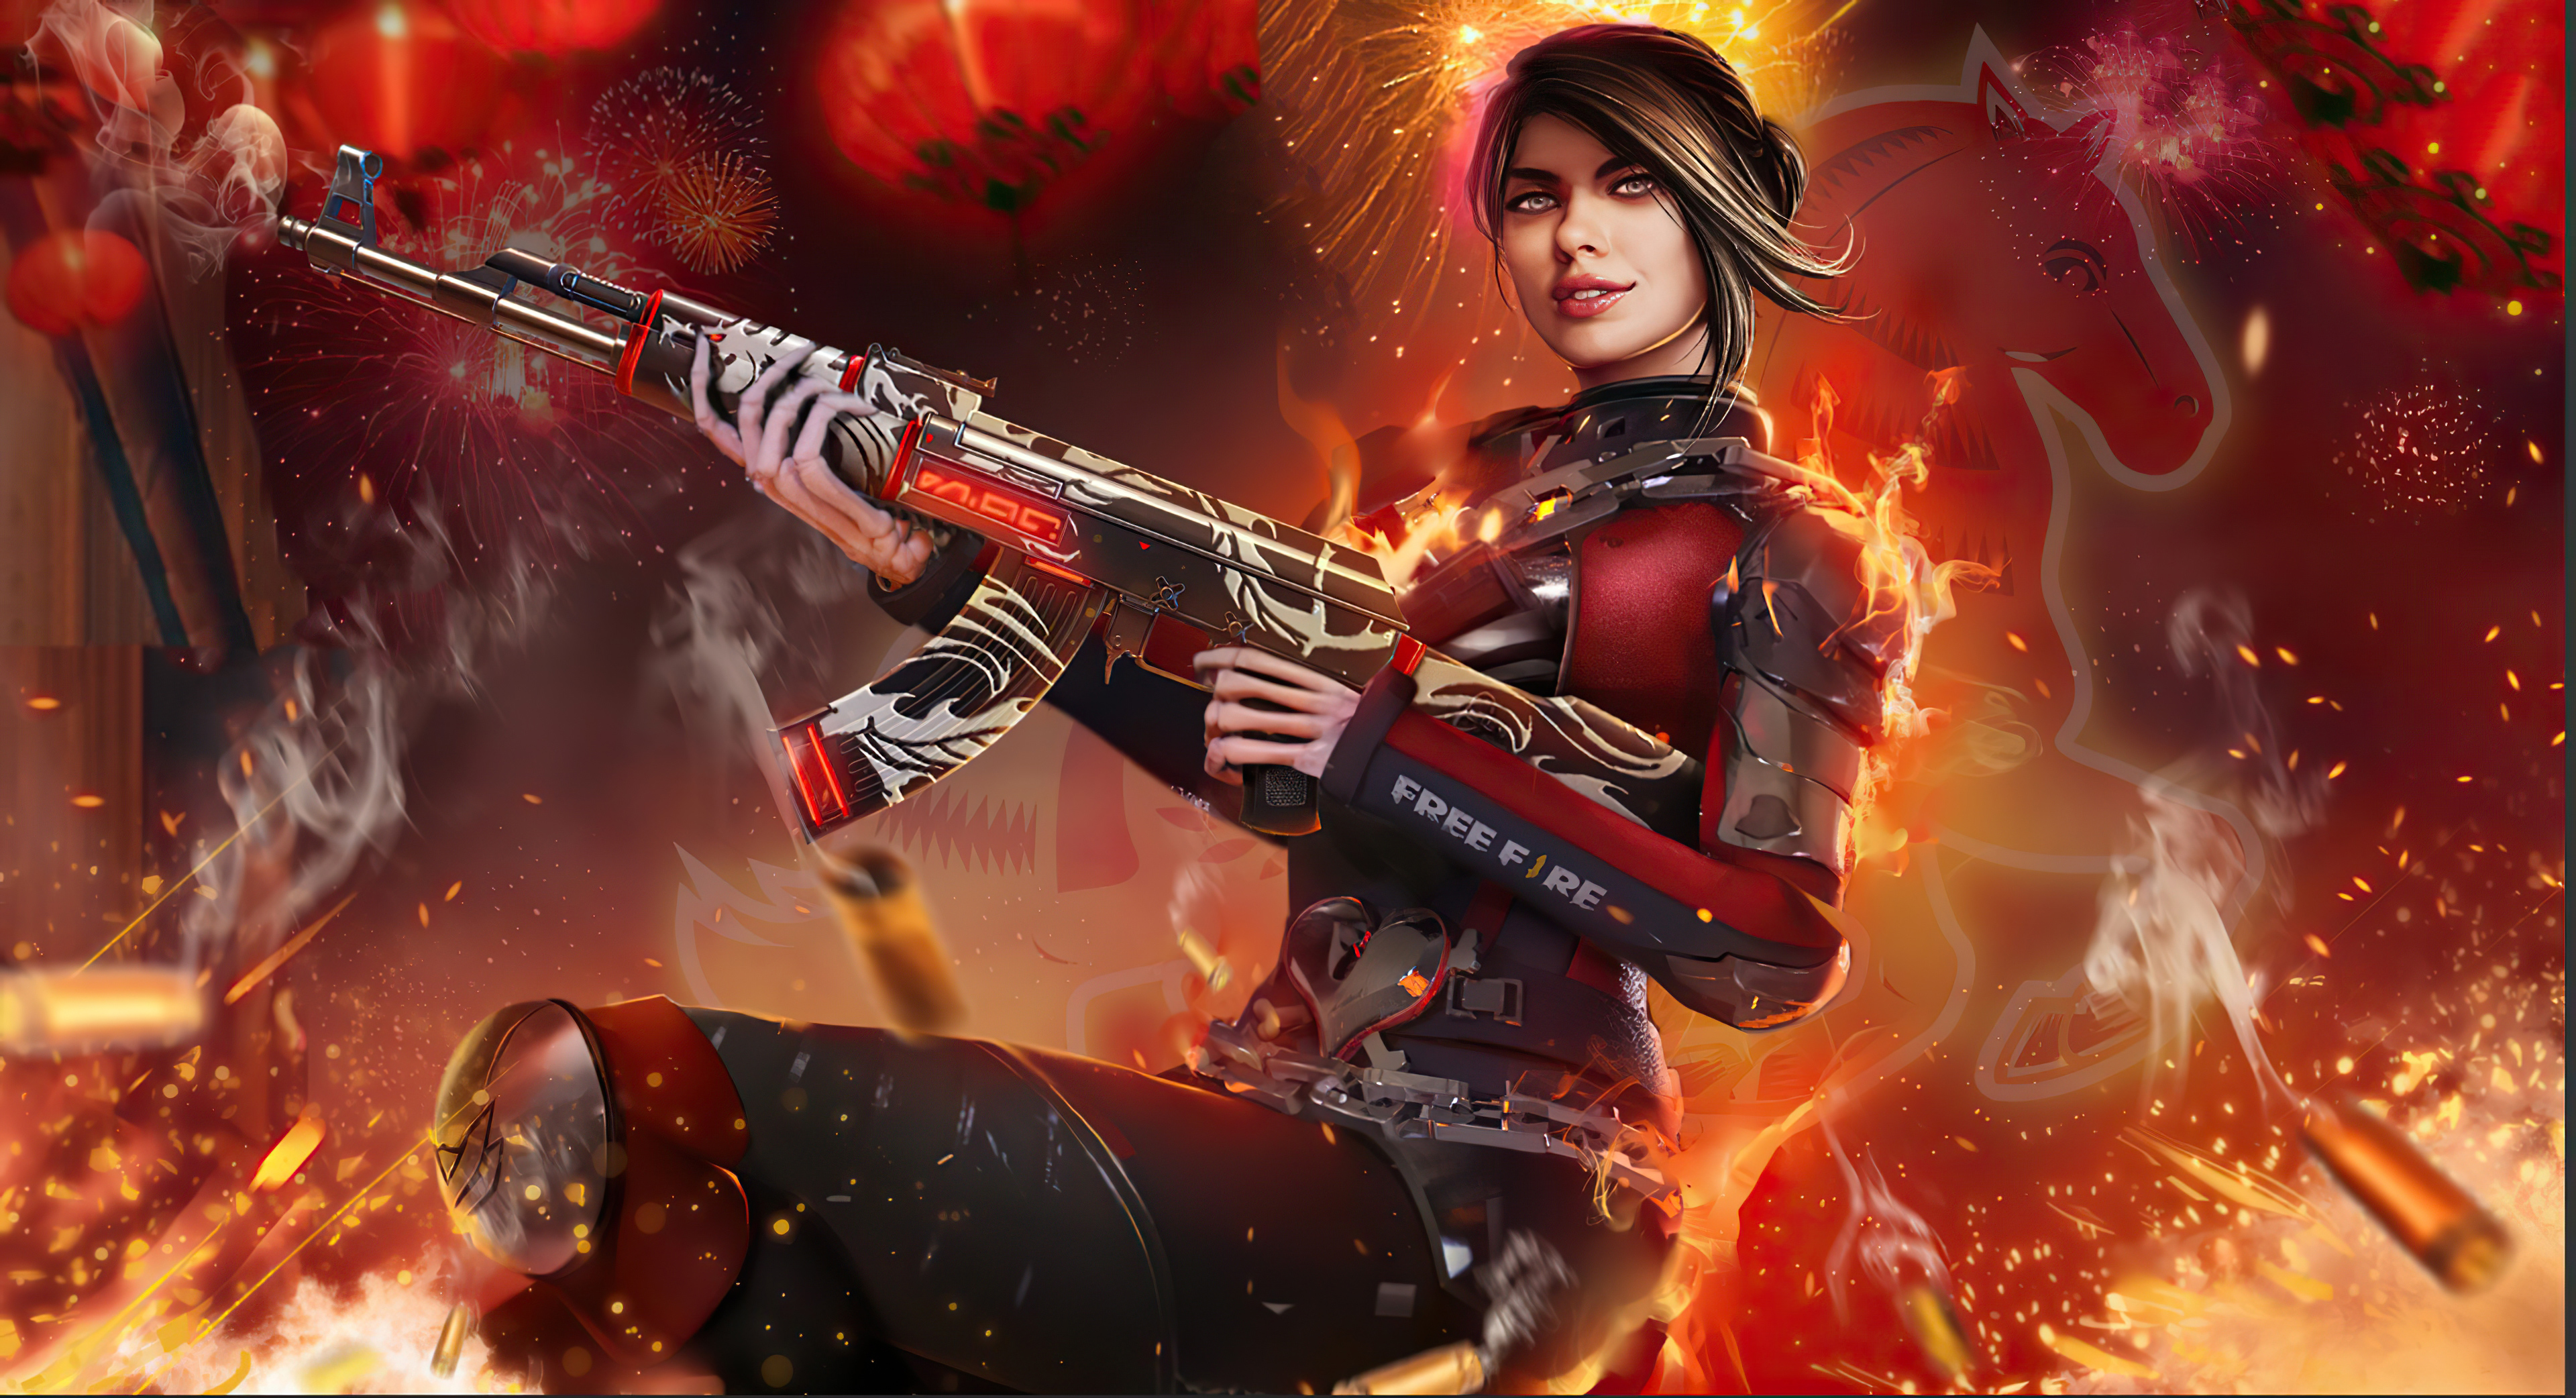 Garena Free Fire 4k Game 2020, HD Games, 4k Wallpapers ...